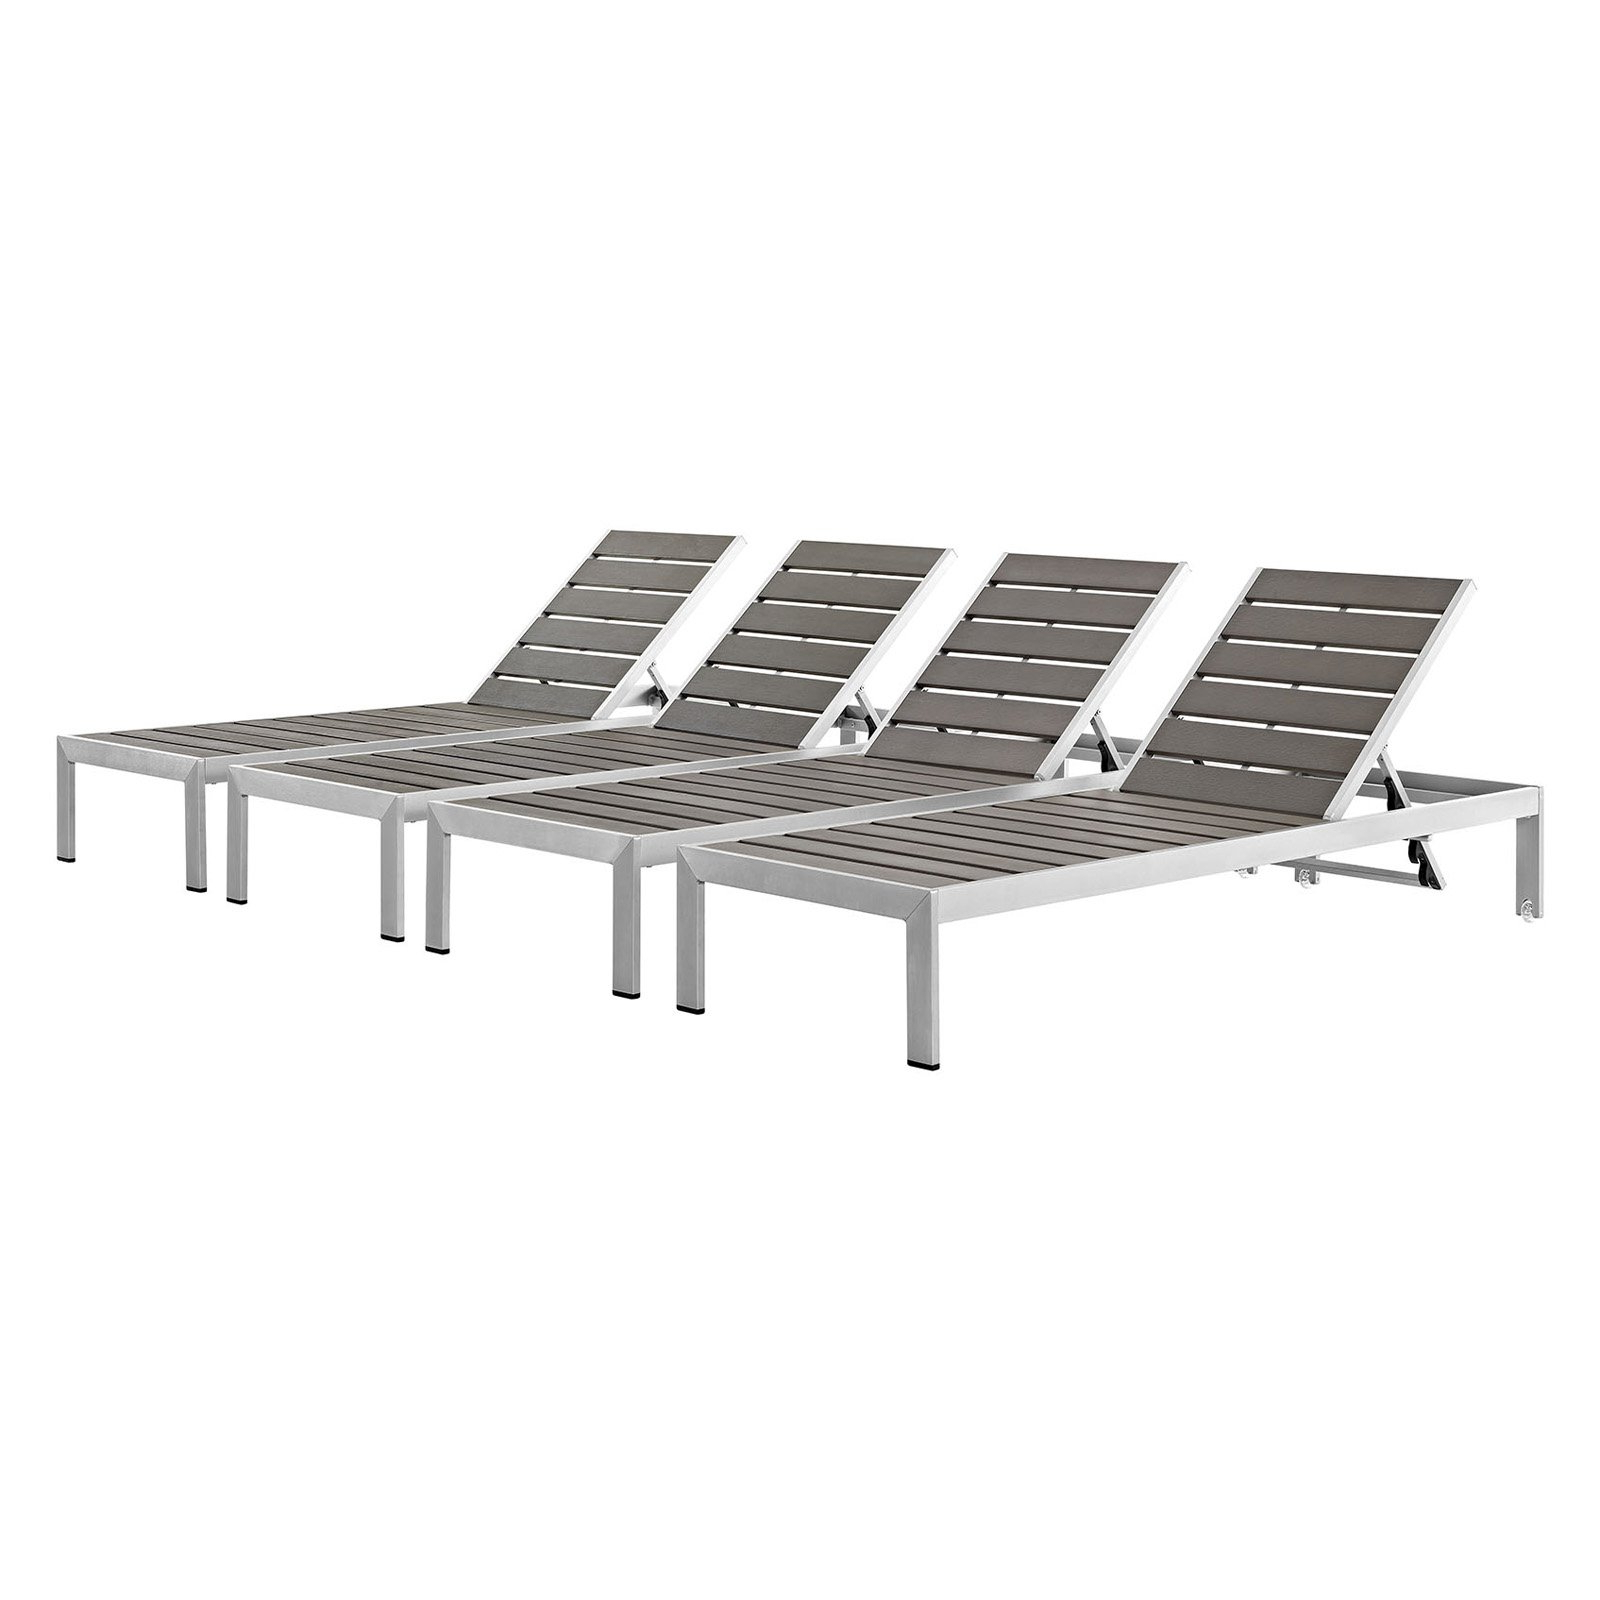 Favorite Havenside Home Surfside Rutkoske Outdoor Wood Chaise Lounges Inside Outdoor Modway Shore Aluminum Patio Chaise Lounge (View 13 of 25)